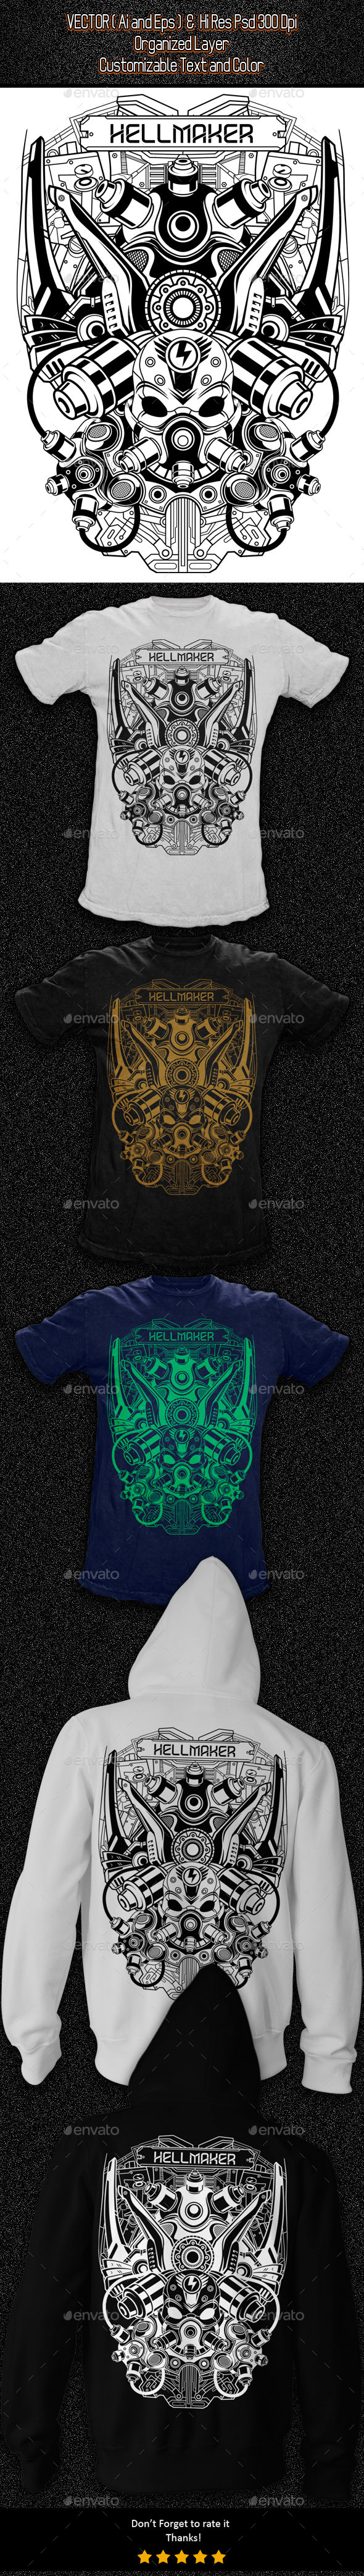 GraphicRiver Futuristic Skull T-shirt Illustration 11554246